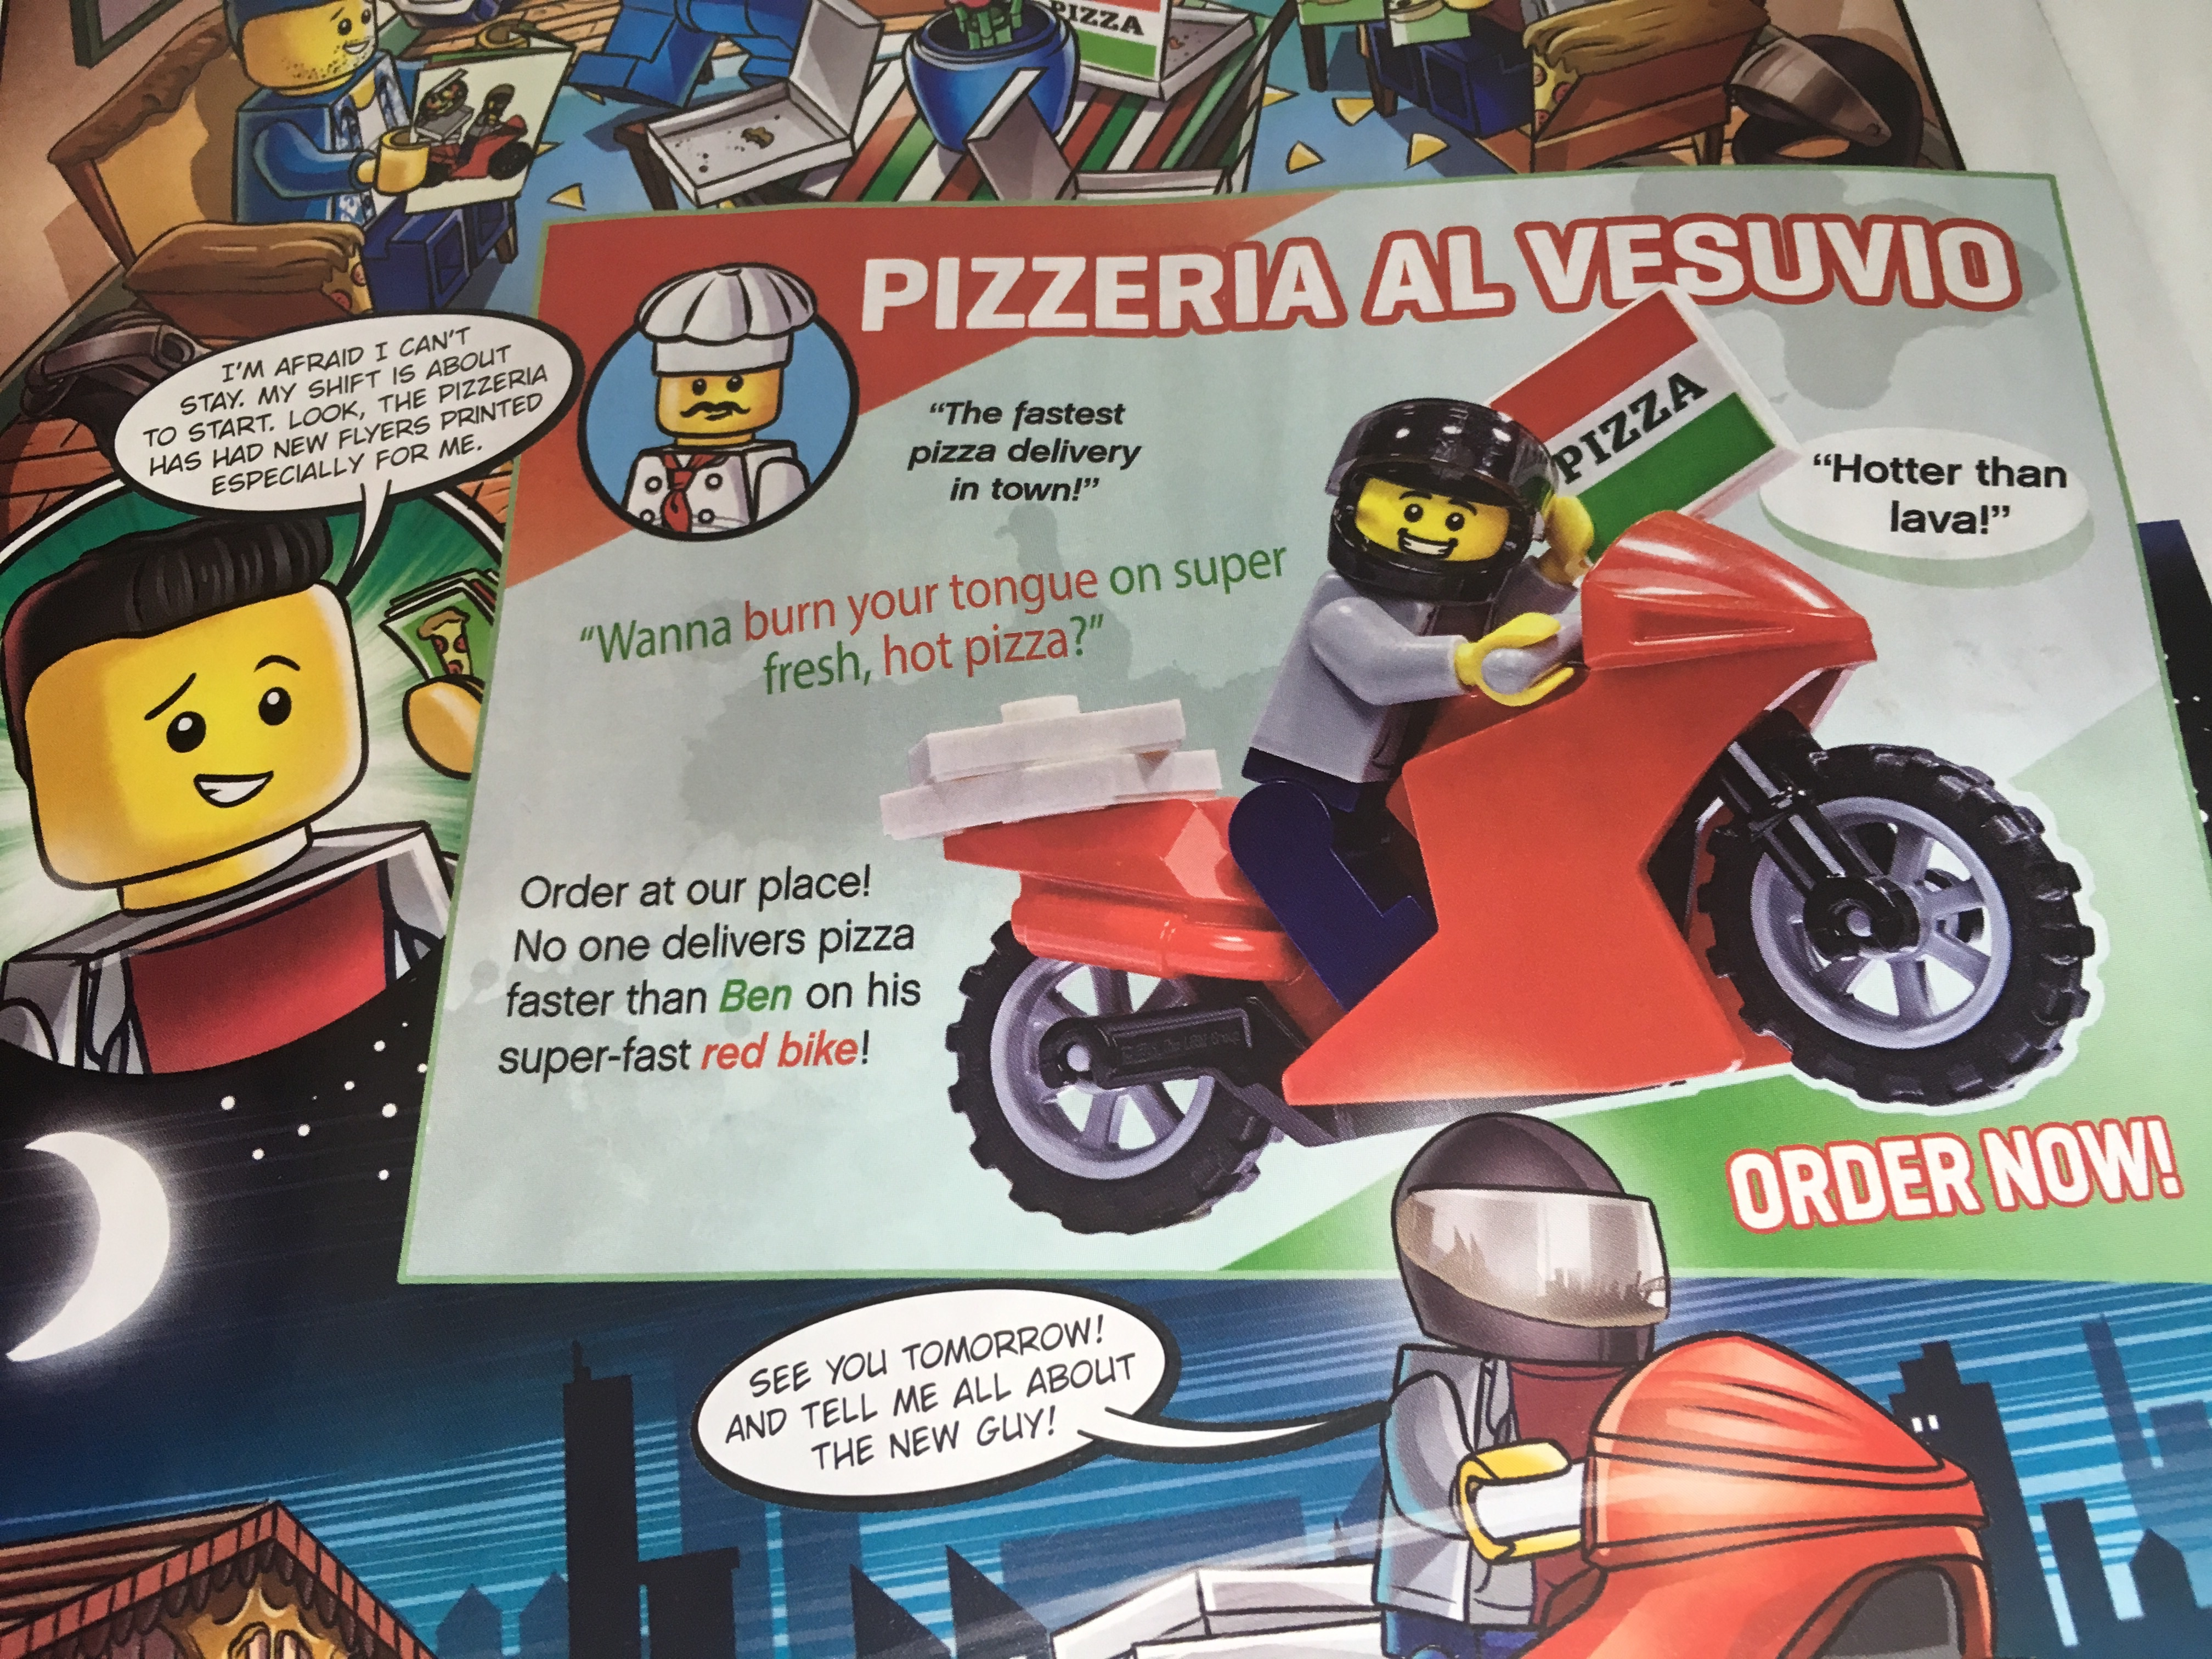 Lego City Magazine Issue 19 Pizza Guy